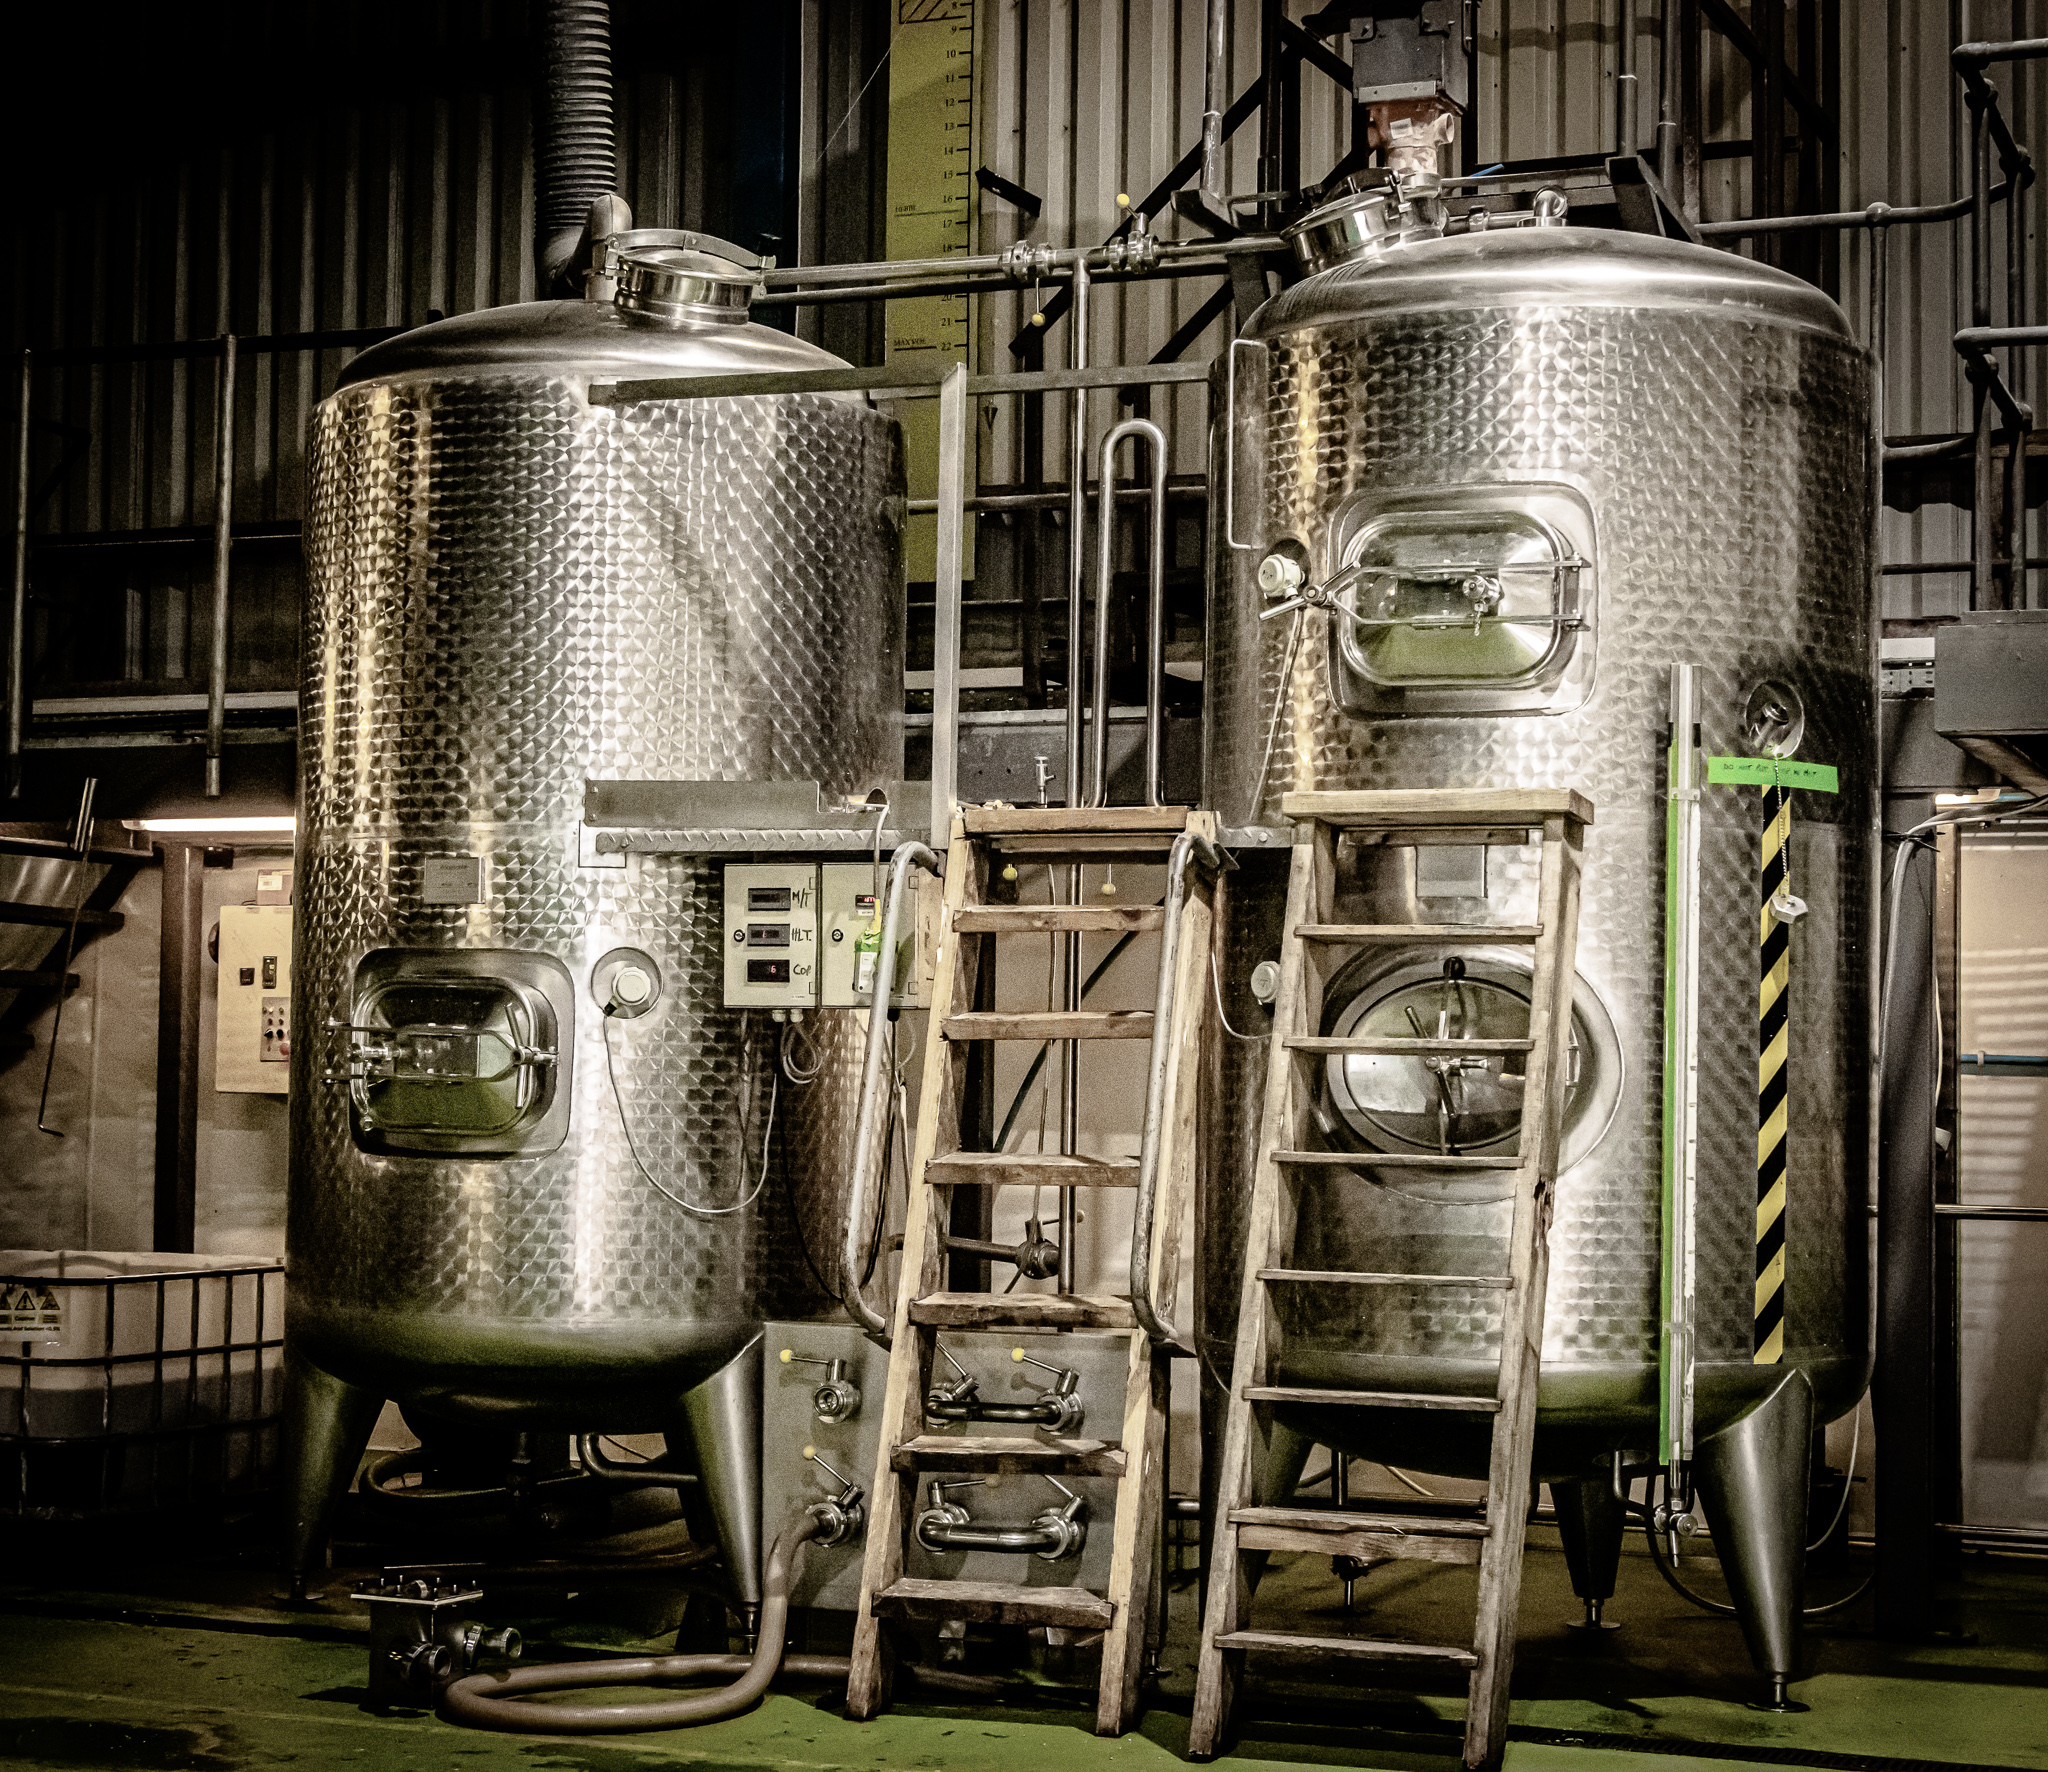 Machinery at Ennerdale Craft Brewery